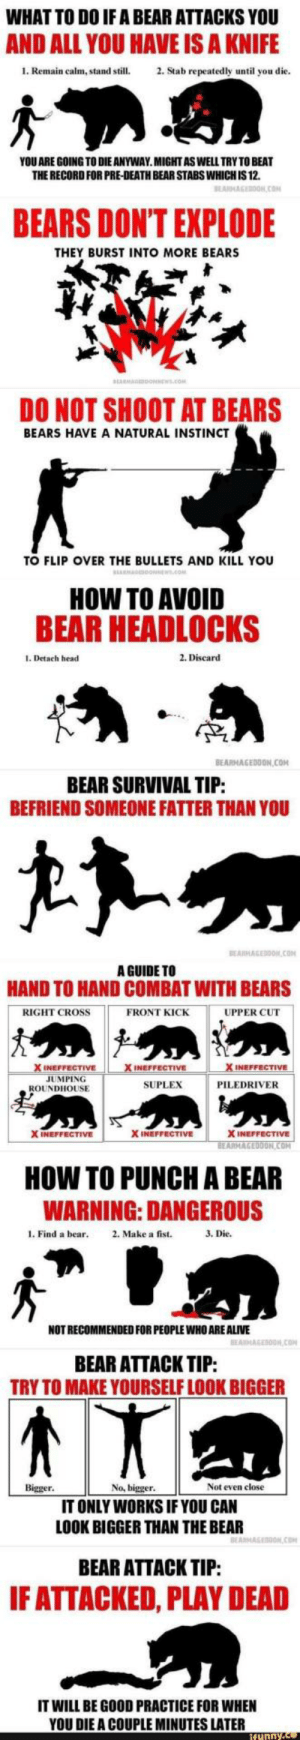 How to survive a bear attack: WHAT TO DO IF A BEAR ATTACKS YOU  AND ALL YOU HAVE IS A KNIFE  1. Remain calm, stand still.2. Stab repeatedly until you die  YOU ARE GOING TO DIE ANYWAY.MIGHTASWELL TRY TO BEAT  THE RECORD FOR PRE-DEATH BEAR STABS WHICH IS 12.  BEARS DONT EXPLODE  THEY BURST INTO MORE BEARS  DO NOT SHOOT AT BEARS  BEARS HAVE A NATURAL INSTINCT  TO FLIP OVER THE BULLETS AND KILL YOU  HOW TO AVOID  BEAR HEADLOCKS  1. Detach head  2. Discard  TP  BEARMAGEDDON COM  BEAR SURVIVAL TIP  BEFRIEND SOMEONE FATTER THAN YOU  A GUIDE TO  HAND TO HAND COMBAT WITH BEARS  RIGHT CROSS  FRONT KICK  UPPER CUT  INEFFECTIVE  JUMPING  SUPLEX  PILEDRIVER  ROUNDHOUSE  X INEFFECTIVE  X INEFFECTIVE  ON  HOW TO PUNCH A BEAR  WARNING: DANGEROUS  l. Find a bear 2. Make a fist.  3. Die.  NOT RECOMMENDED FOR PEOPLE WHO ARE ALIVE  BEAR ATTACK TIP:  TRY TO MAKE YOURSELF LOOK BIGGER  Bigger  No, bigger  Not even close  IT ONLY WORKS IF YOU CAN  LOOK BIGGER THAN THE BEAR  BEAR ATTACK TIP:  F ATTACKED, PLAY DEAD  IT WILL BE GOOD PRACTICE FOR WHEN  YOU DIE A COUPLE MINUTES LATER How to survive a bear attack